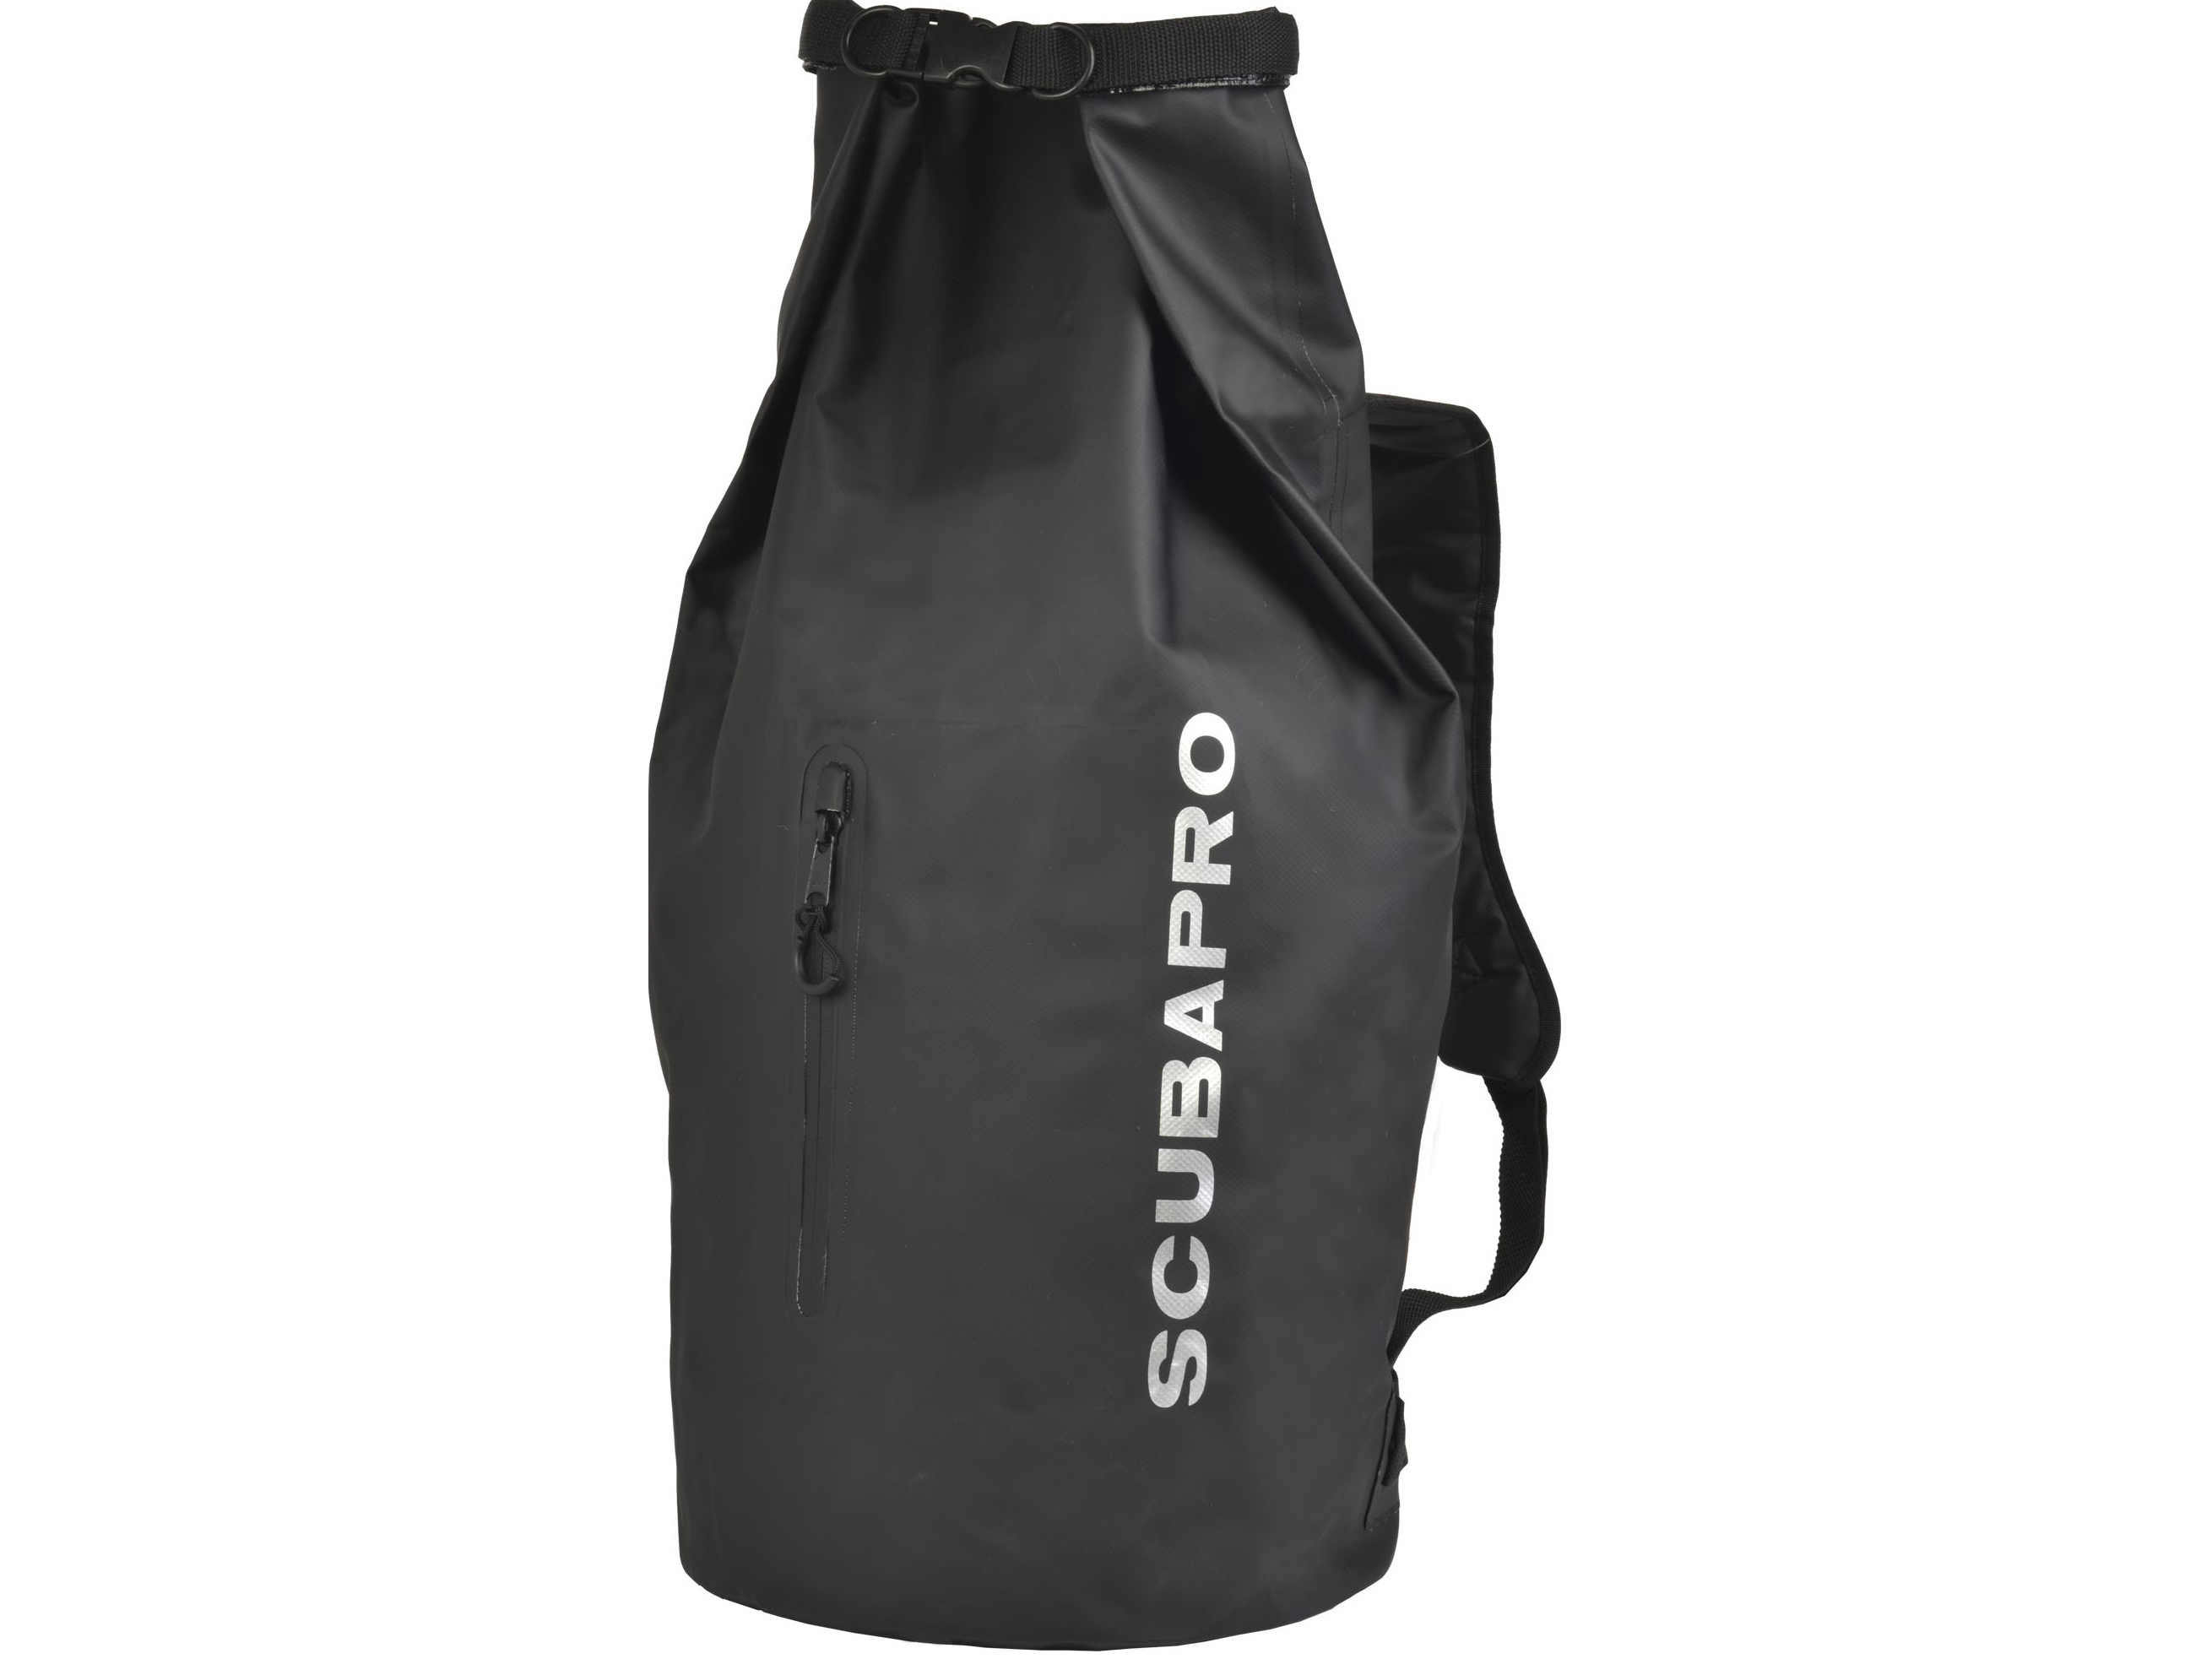 SCUBAPRO 30L DRY BACKPACK